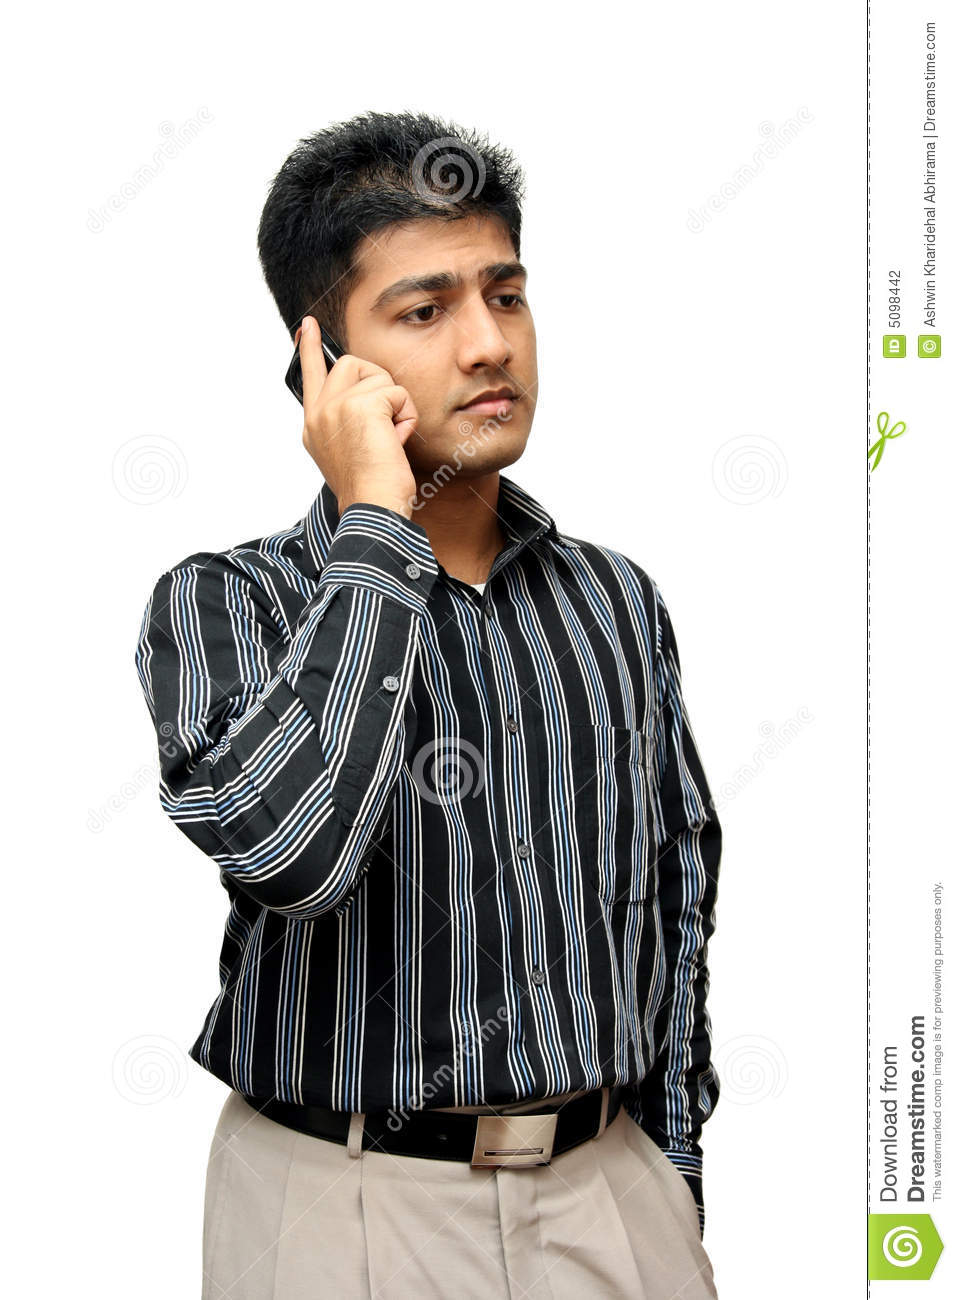 how to start a cell phone business in india